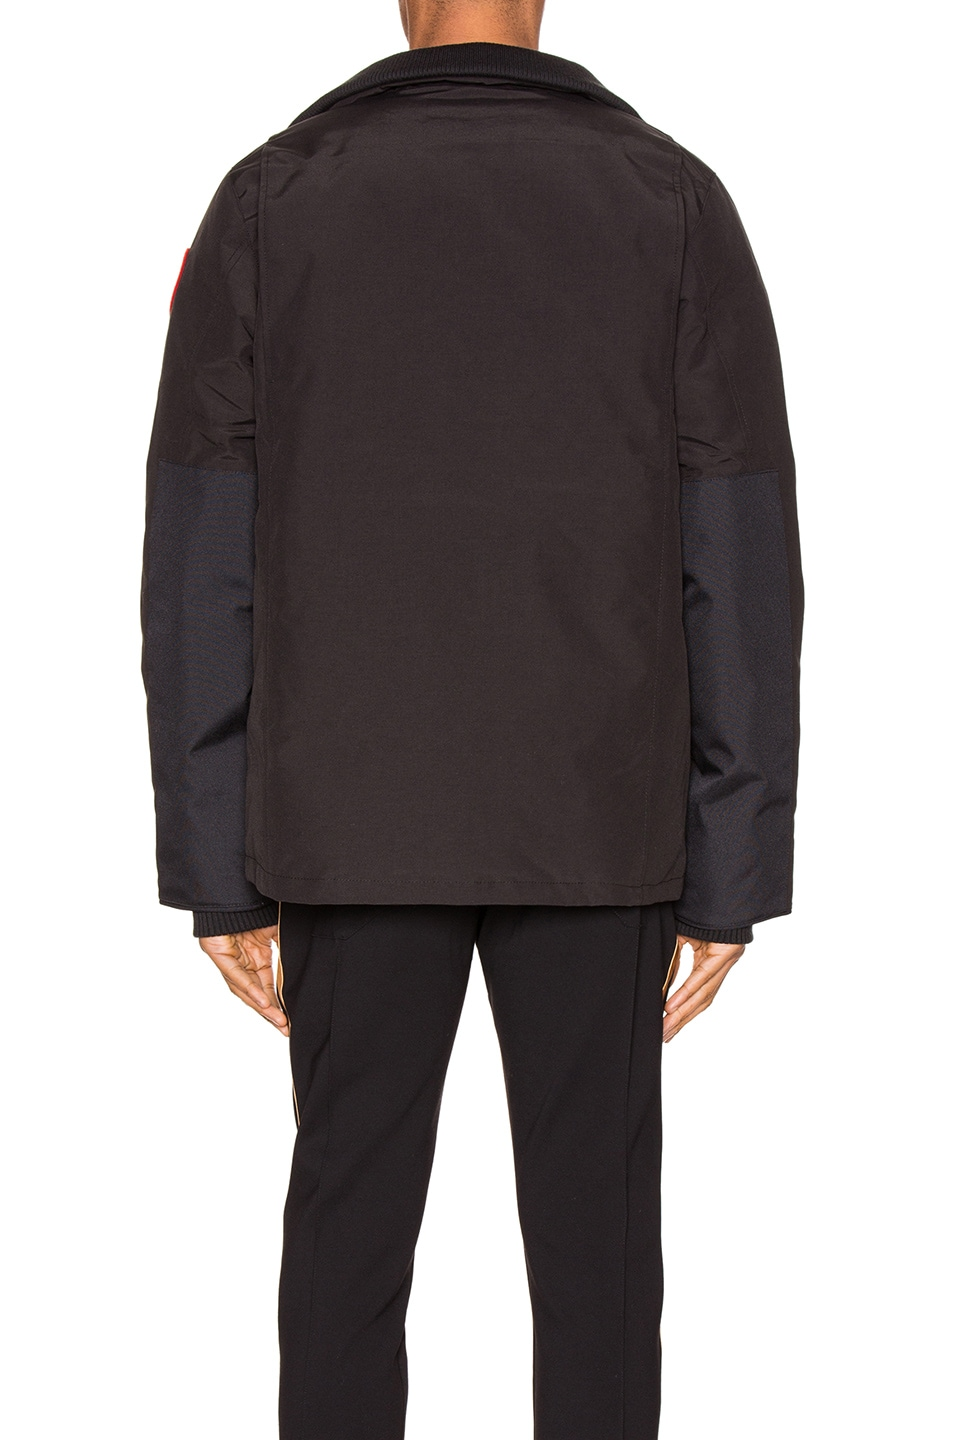 Image 5 of Canada Goose Forester Jacket in Black